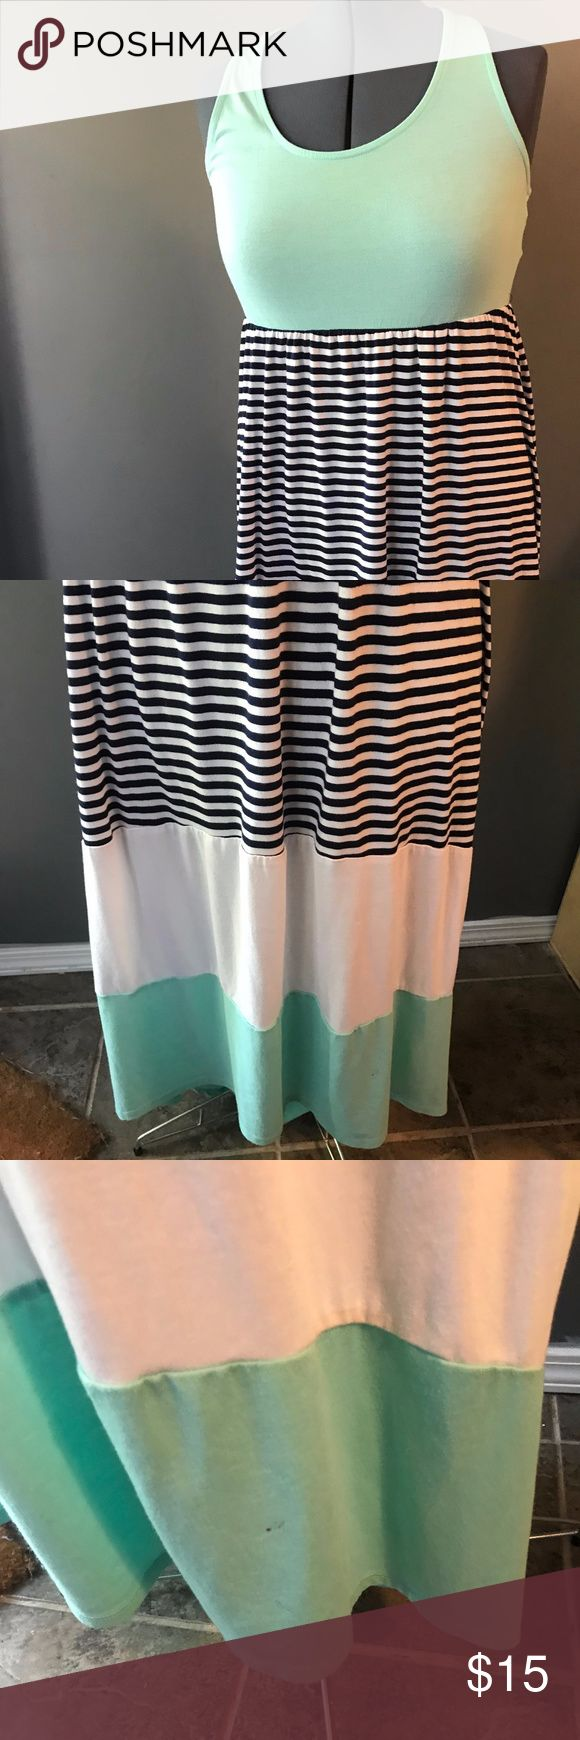 """Mossimo Supply Co. Mint Navy High Low Dress XL Super cute high low dress from Mossimo Supply Co! Mint color at the top and bottom, navy and white stripes and white section. T shaped back. Size Extra Large. Good condition, only worn once. Has small nail polish stain near hem (pictured). Not very noticeable. No other known flaws.  Pit to pit laying flat: 18"""" Shoulder to hem (Front): 44"""" Shoulder to hem (Back): 55""""  Smoke free home. Mossimo Supply Co. Dresses High Low"""